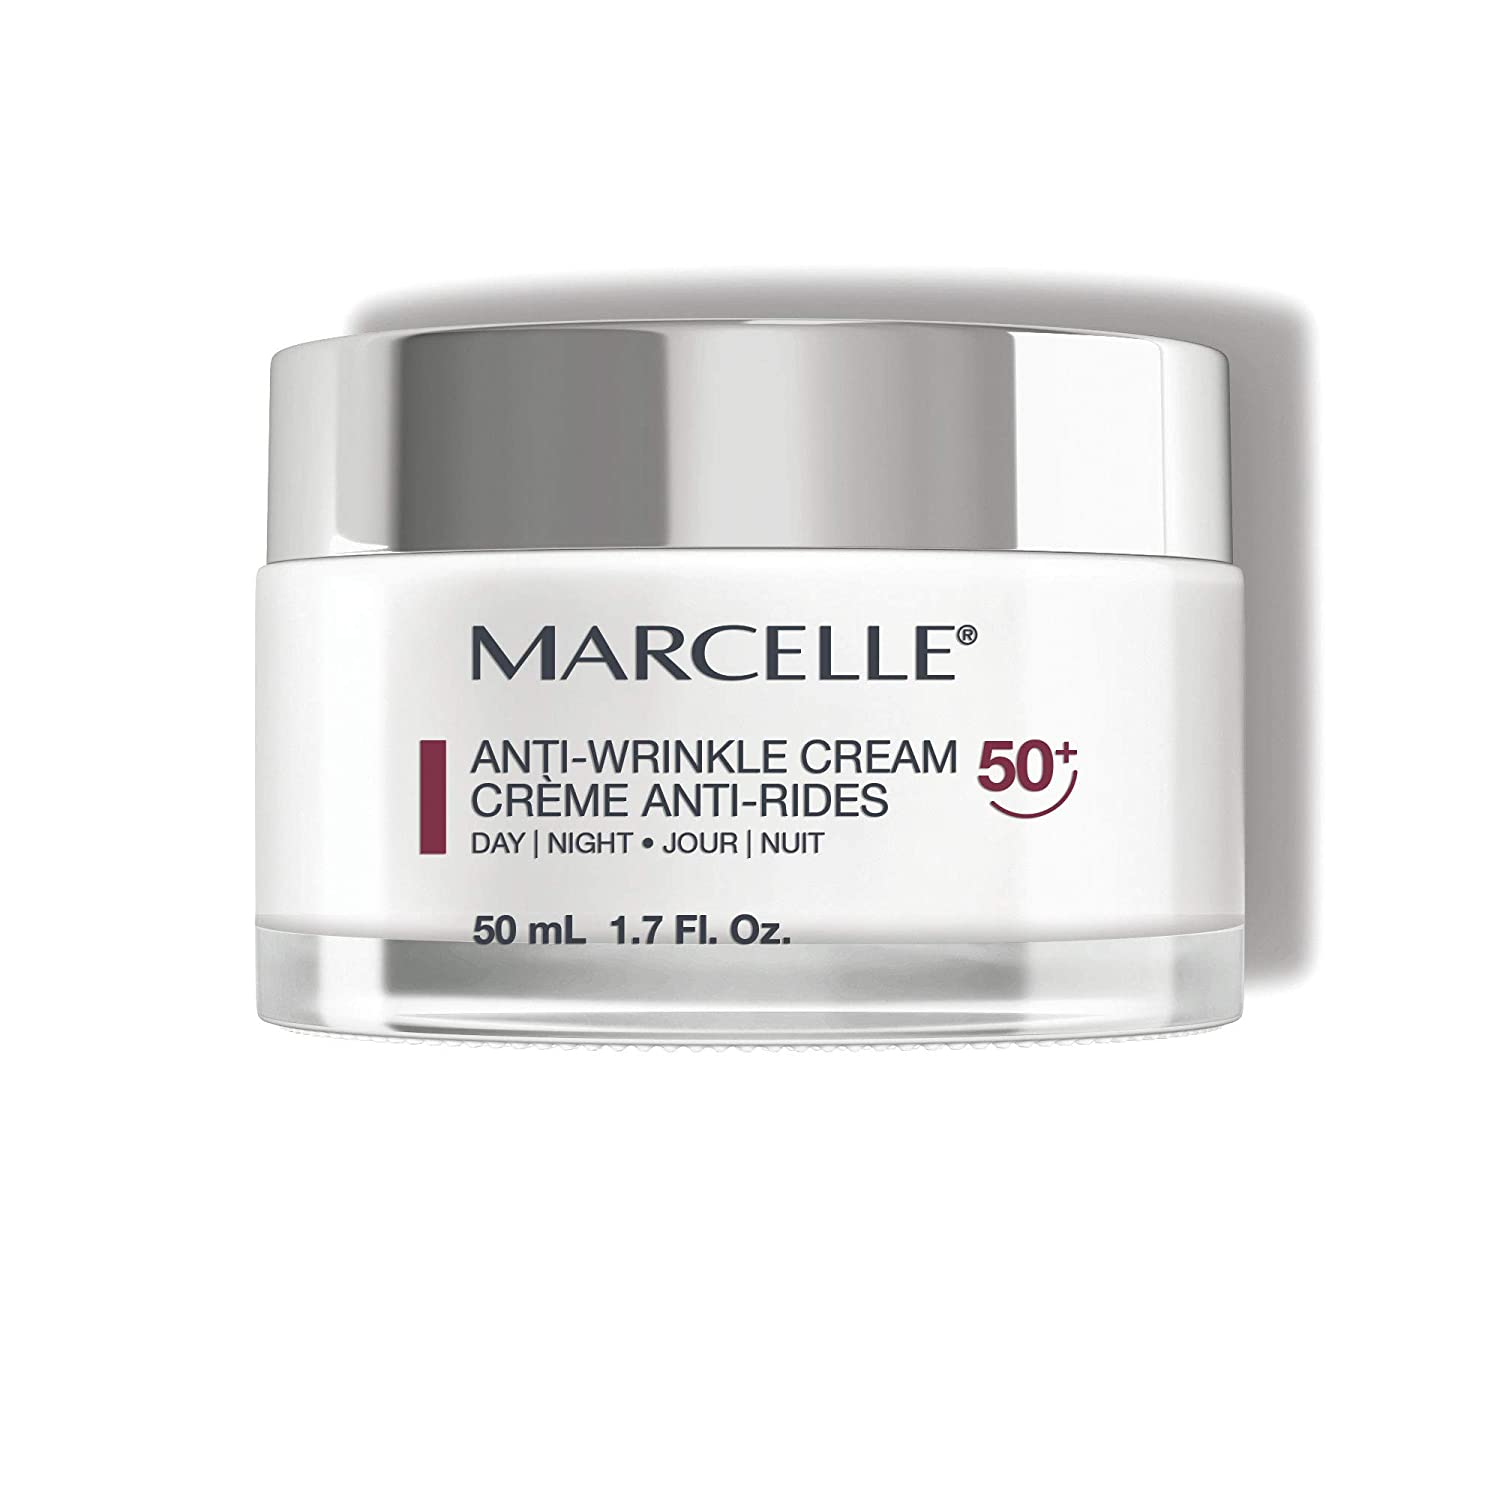 MARCELLE Anti-Wrinkle Cream, Ages 50+, 1.7 ounces